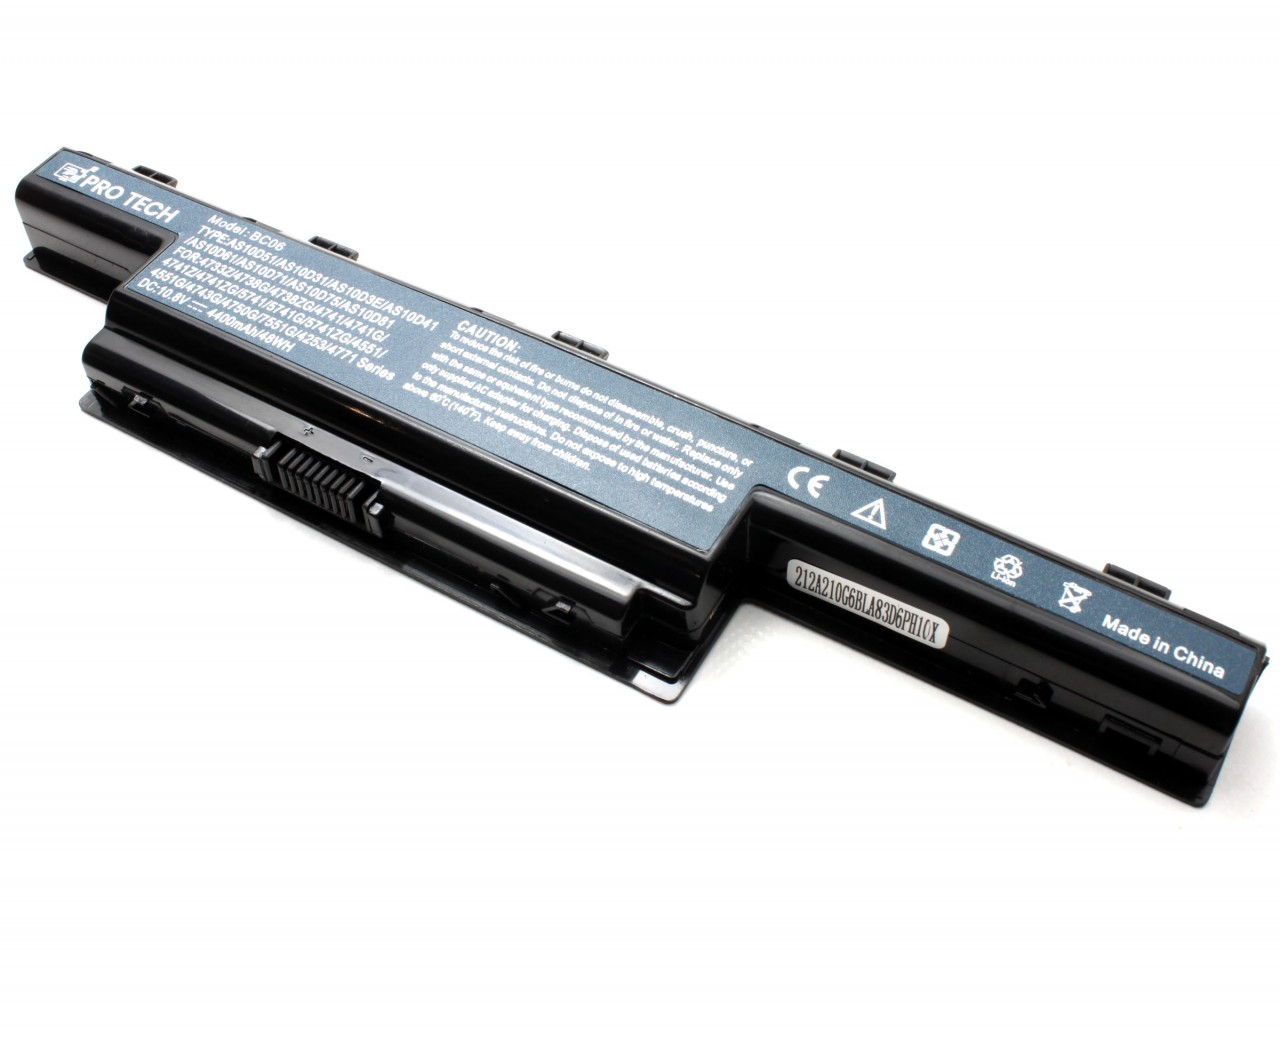 Baterie Packard Bell EasyNote LM83 6 celule imagine powerlaptop.ro 2021